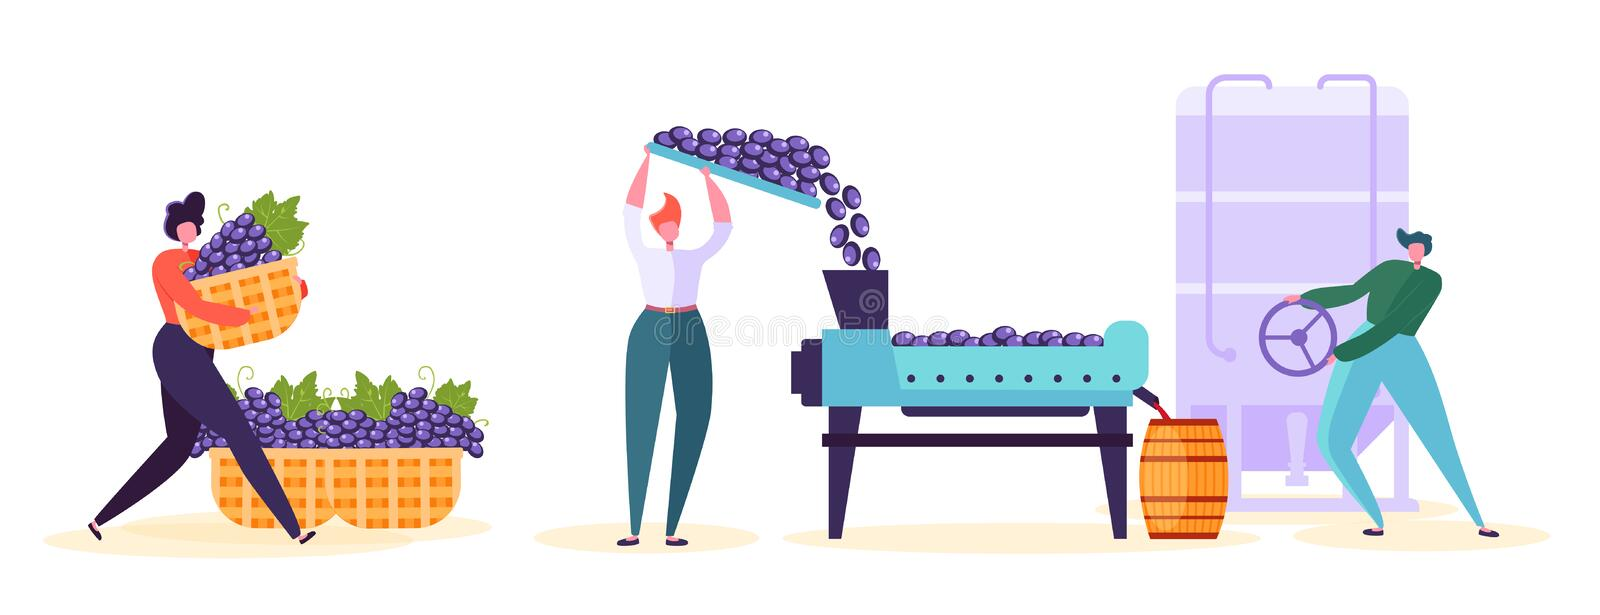 Red Wine Production Factory Character Set. Winery Process Line Infographic Collection. Winemaker Woman Fermentation royalty free illustration